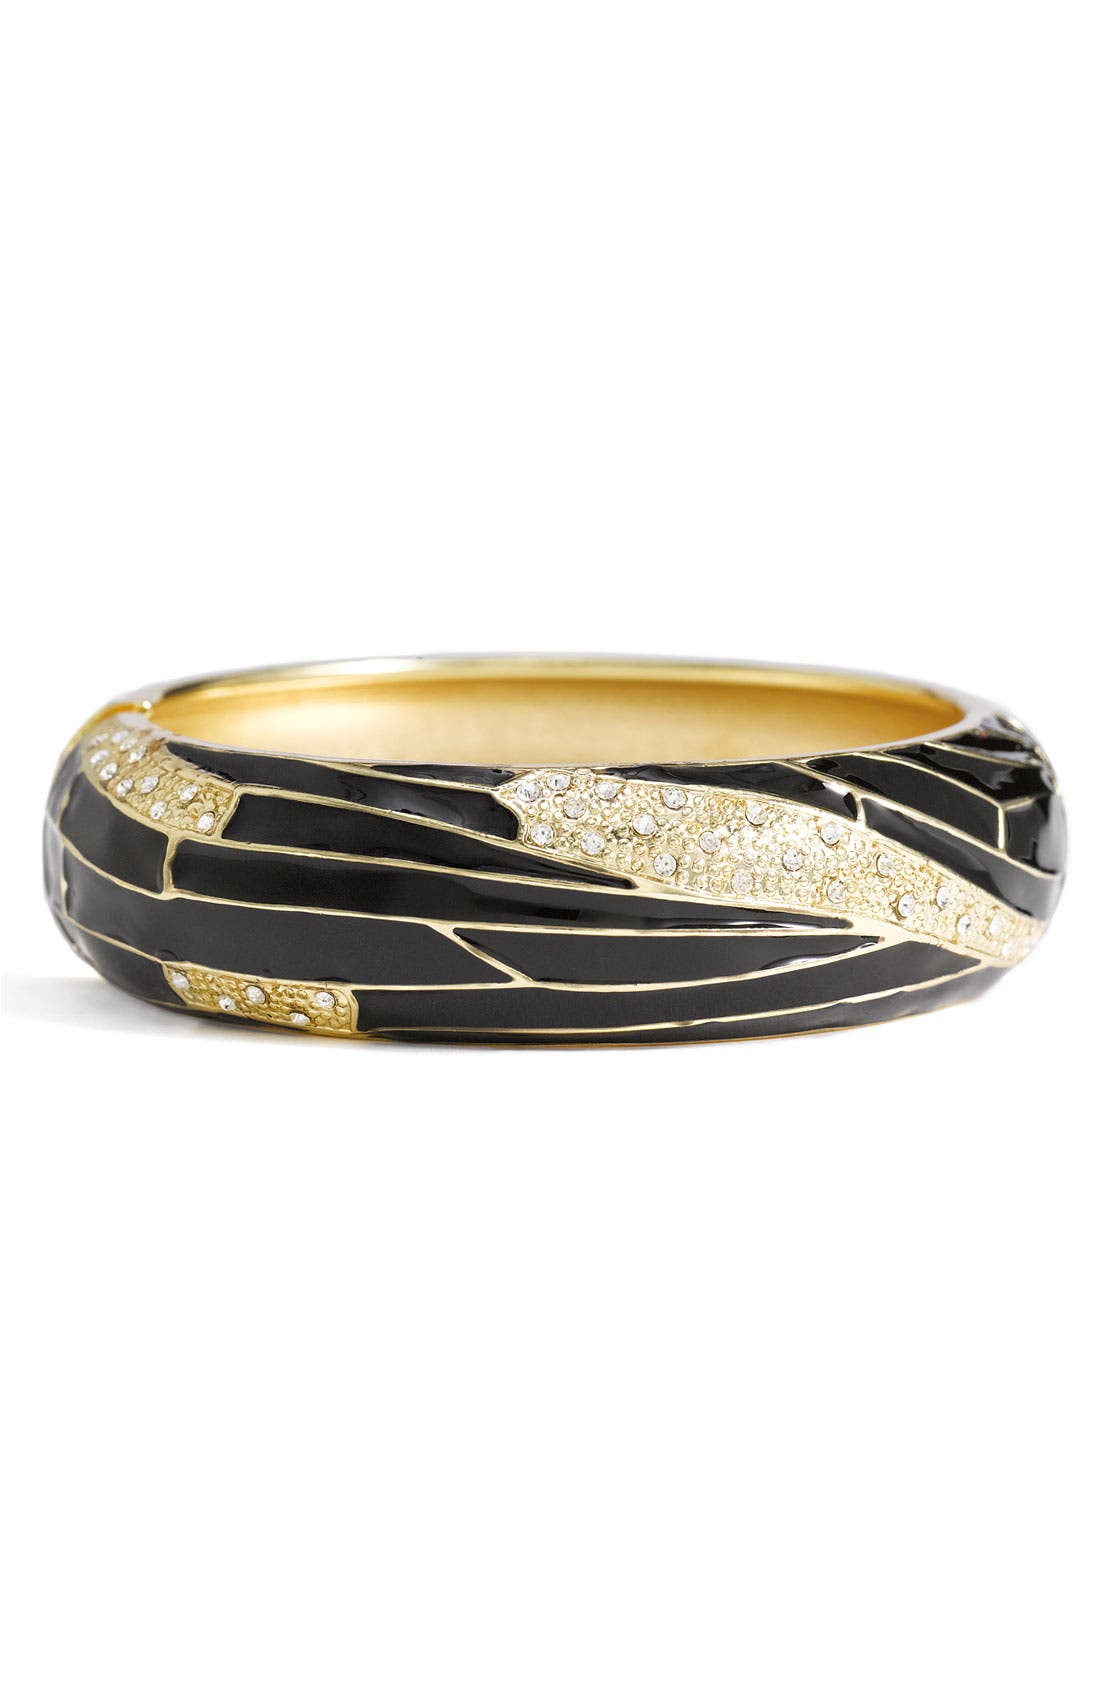 Large Insect Wing Enamel Bangle,                         Main,                         color, 001